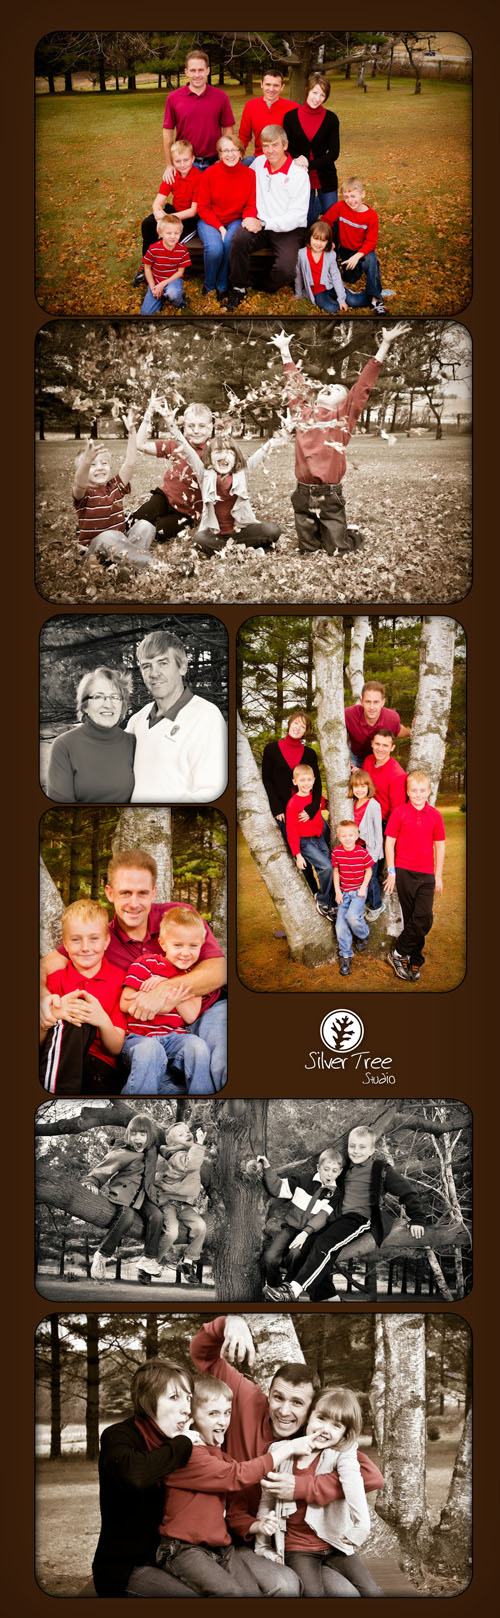 Pictures by Silver Tree Studio, Mount Horeb, WI